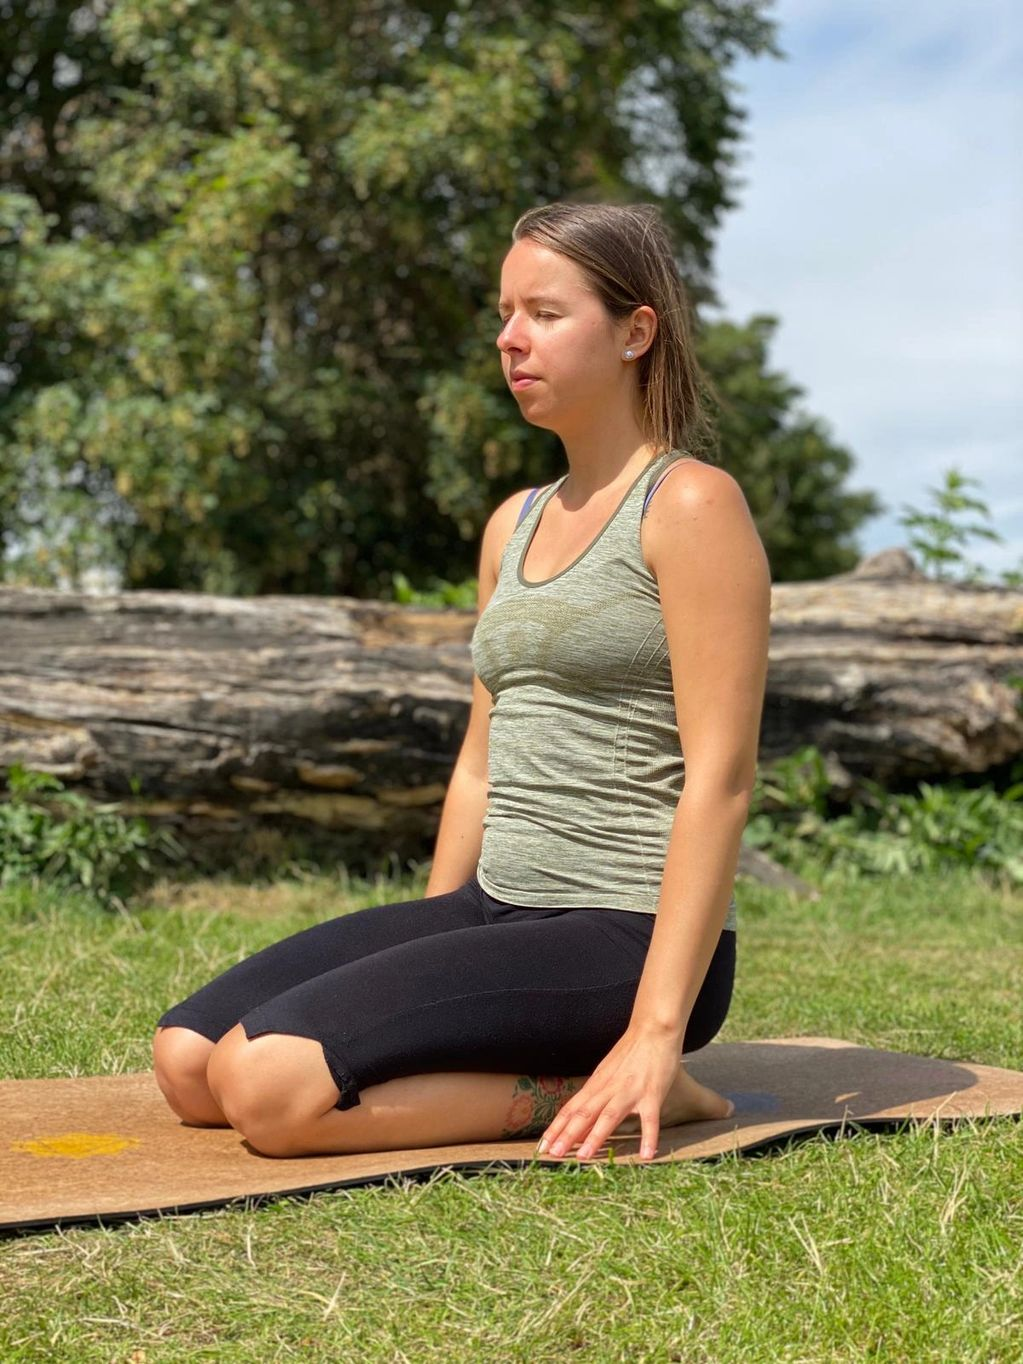 Online yoga teacher Maja